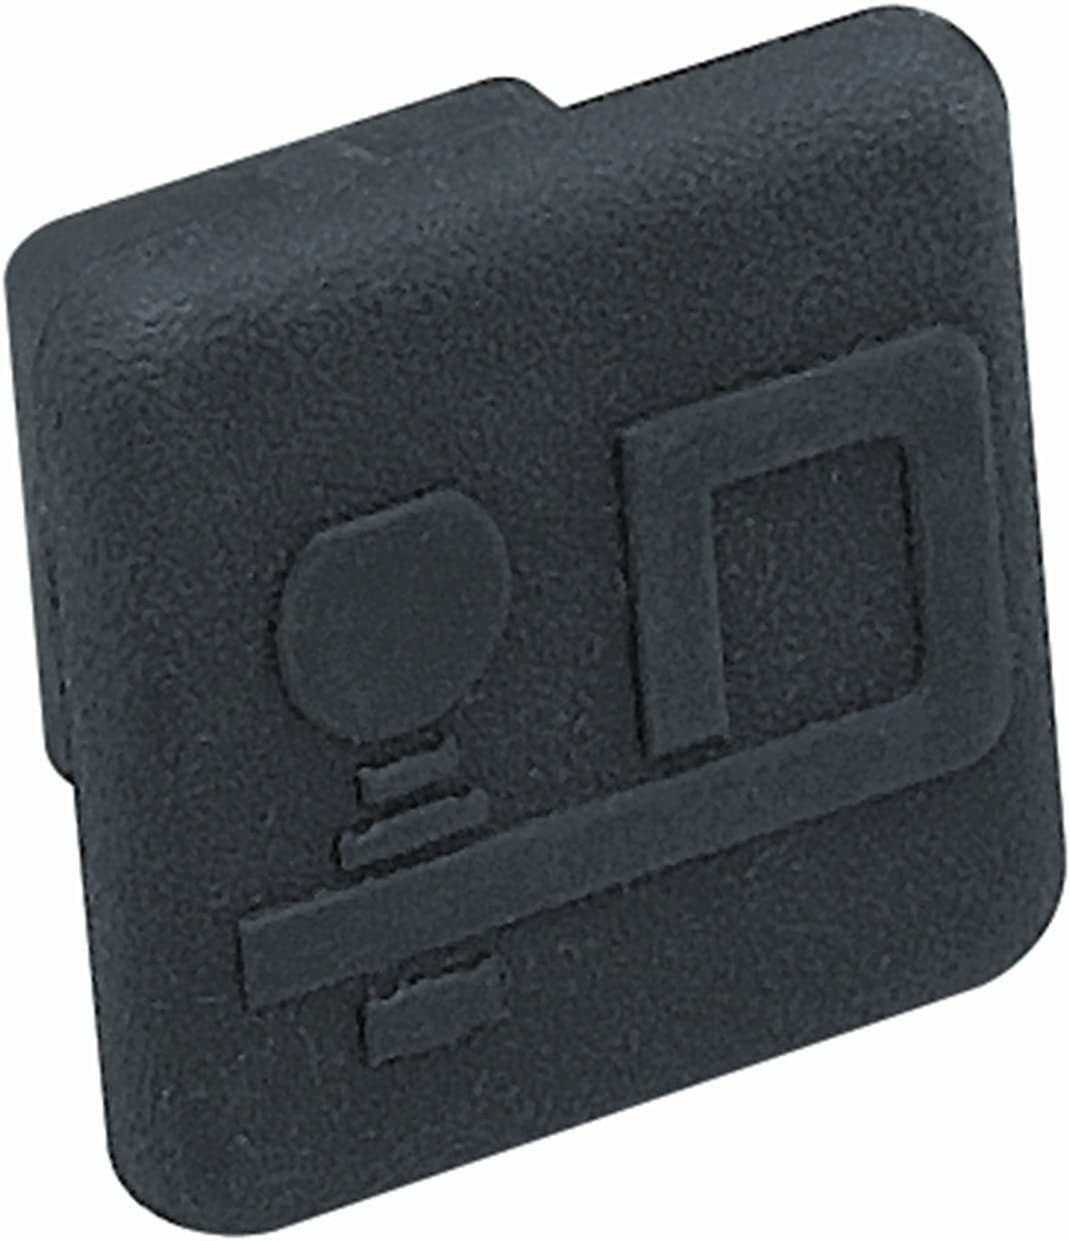 Draw-Tite 2211 Rubber Receiver Tube Cover with Logo for 1-1/4-Inch Receivers